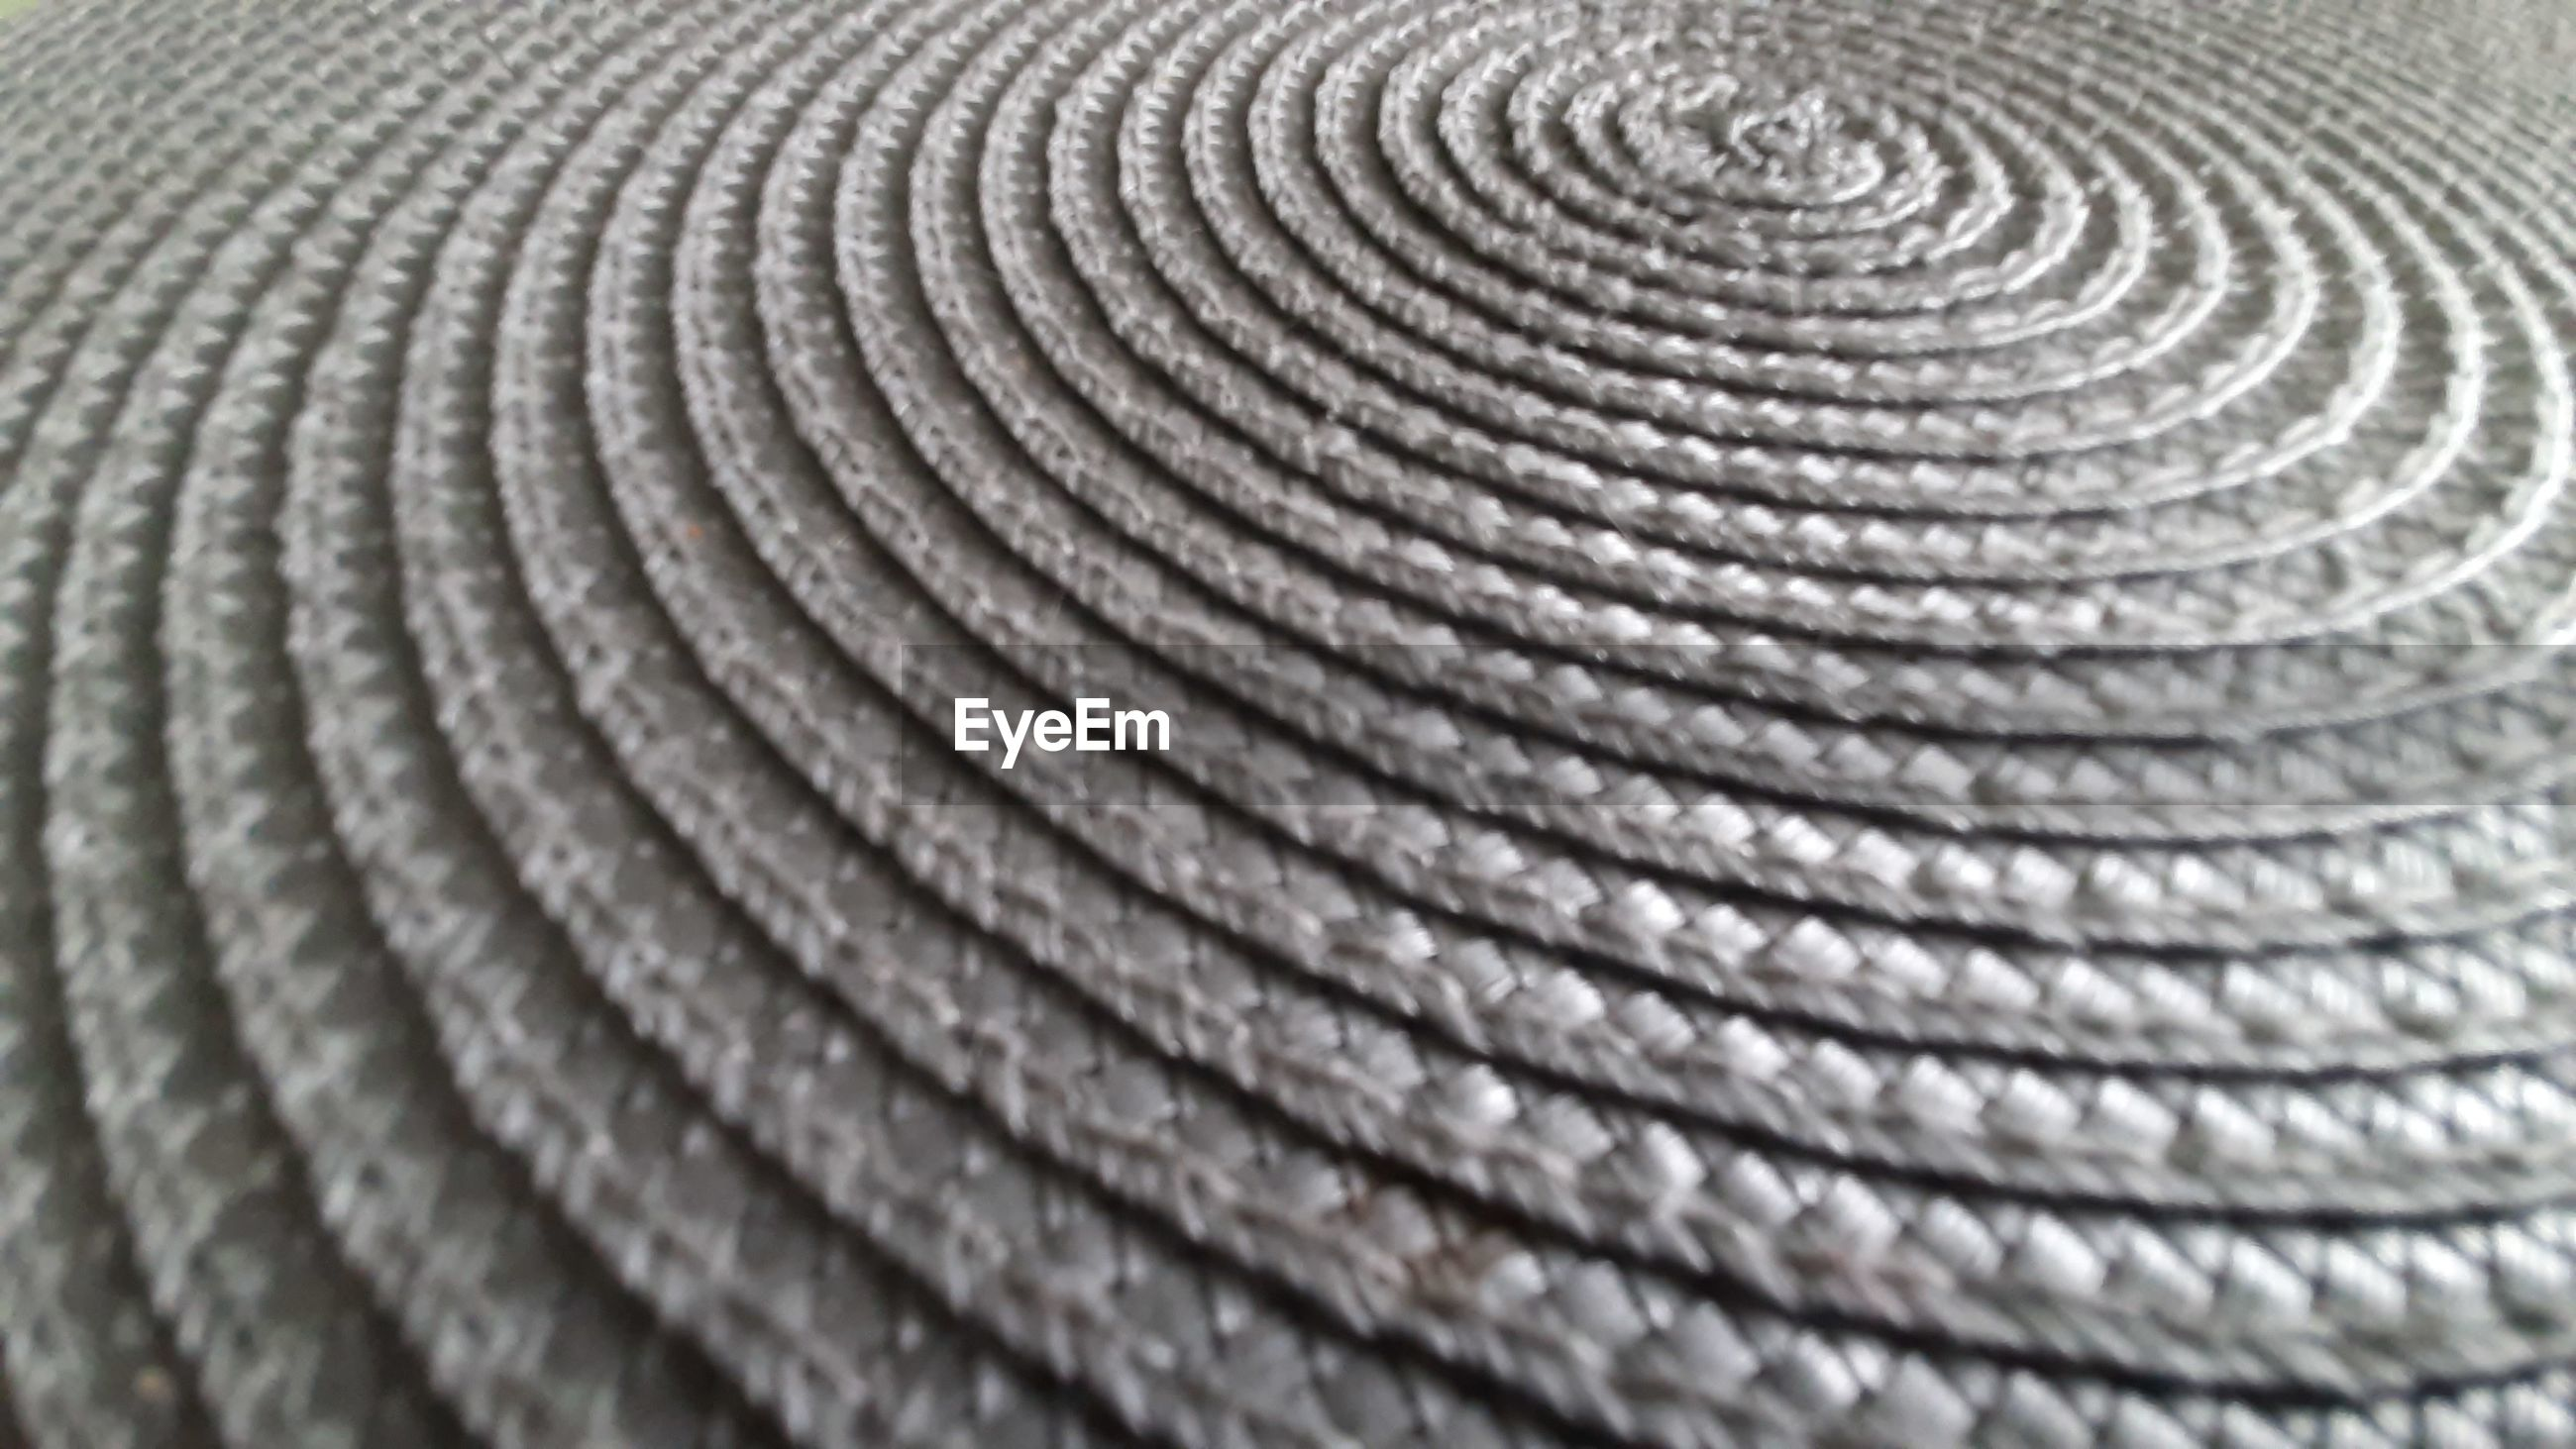 FULL FRAME SHOT OF SPIRAL PATTERN ON TEXTURED SURFACE